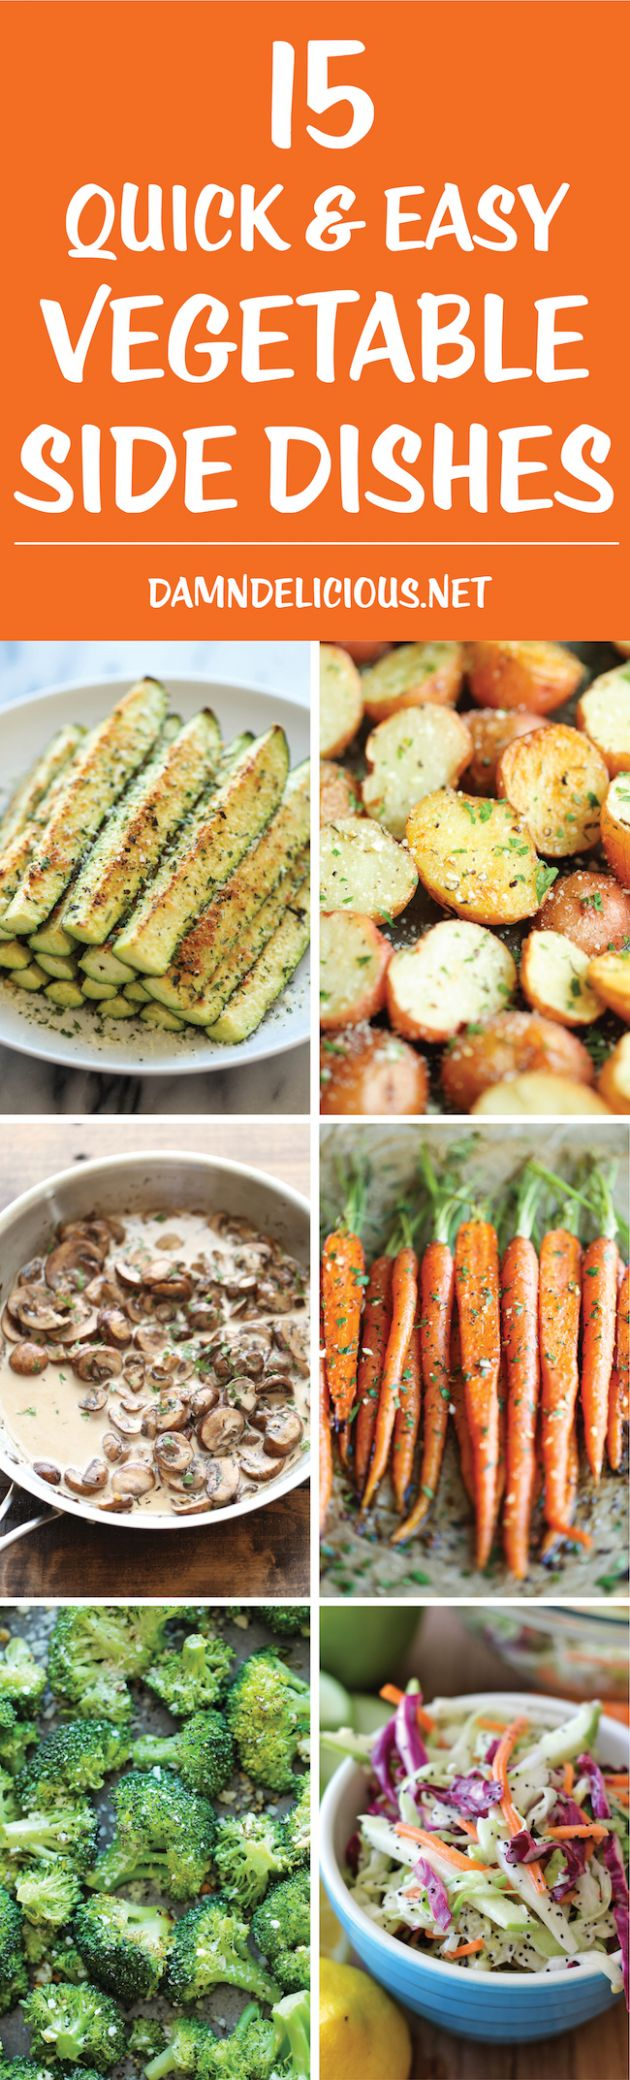 8 Quick and Easy Vegetable Side Dishes - Damn Delicious - Recipes Vegetable Sides